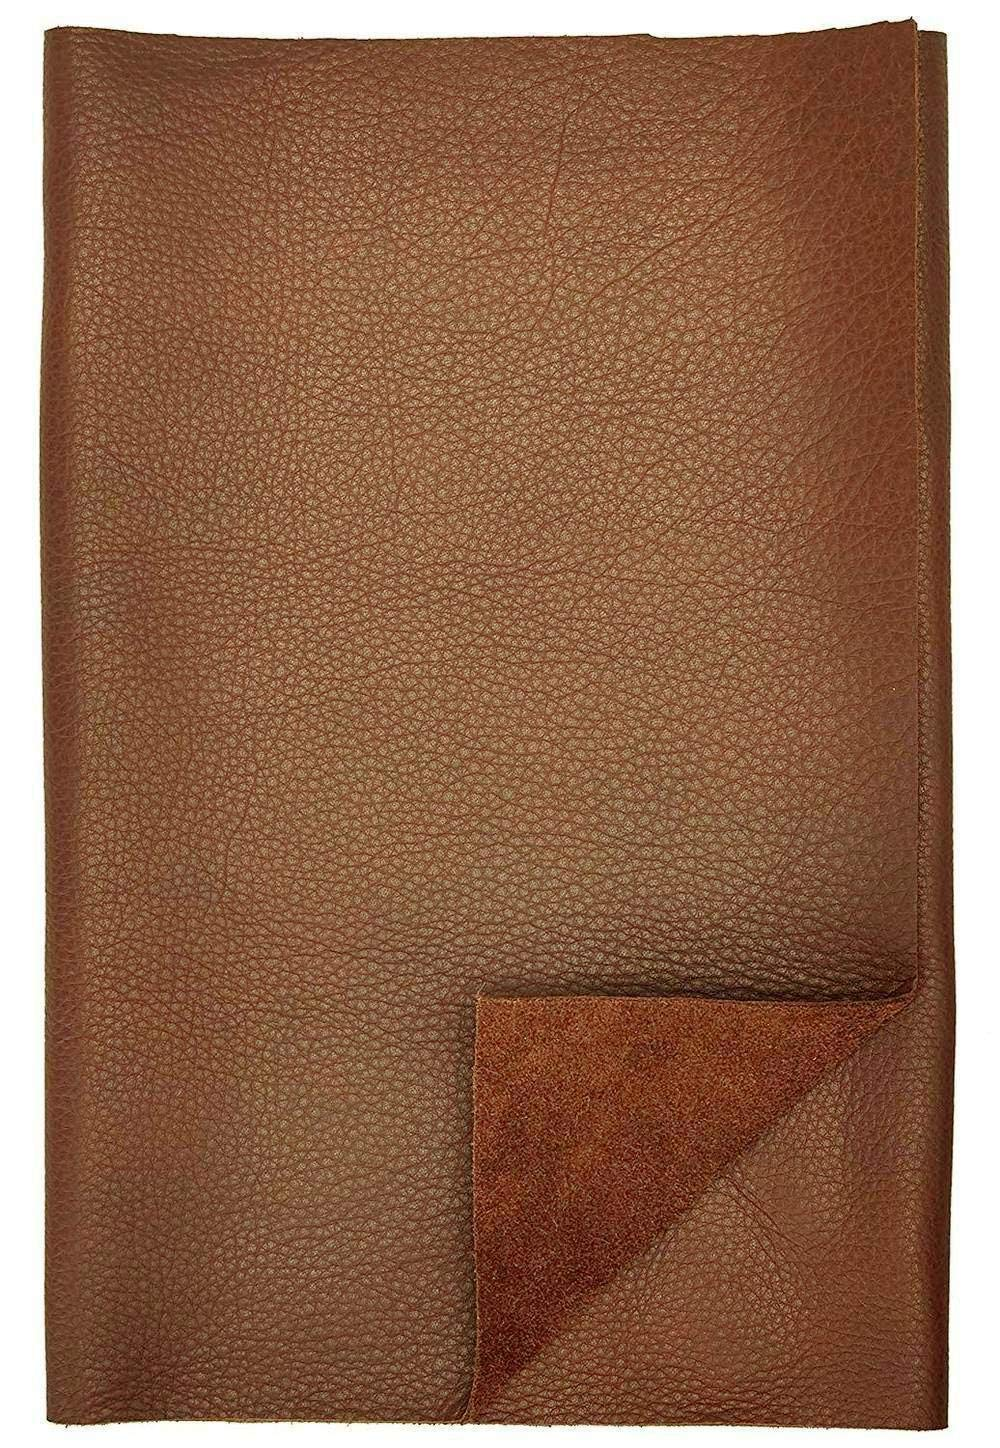 REED Leather HIDES - Cow Skins Various Colors & Sizes (100 Square Foot, Brown)